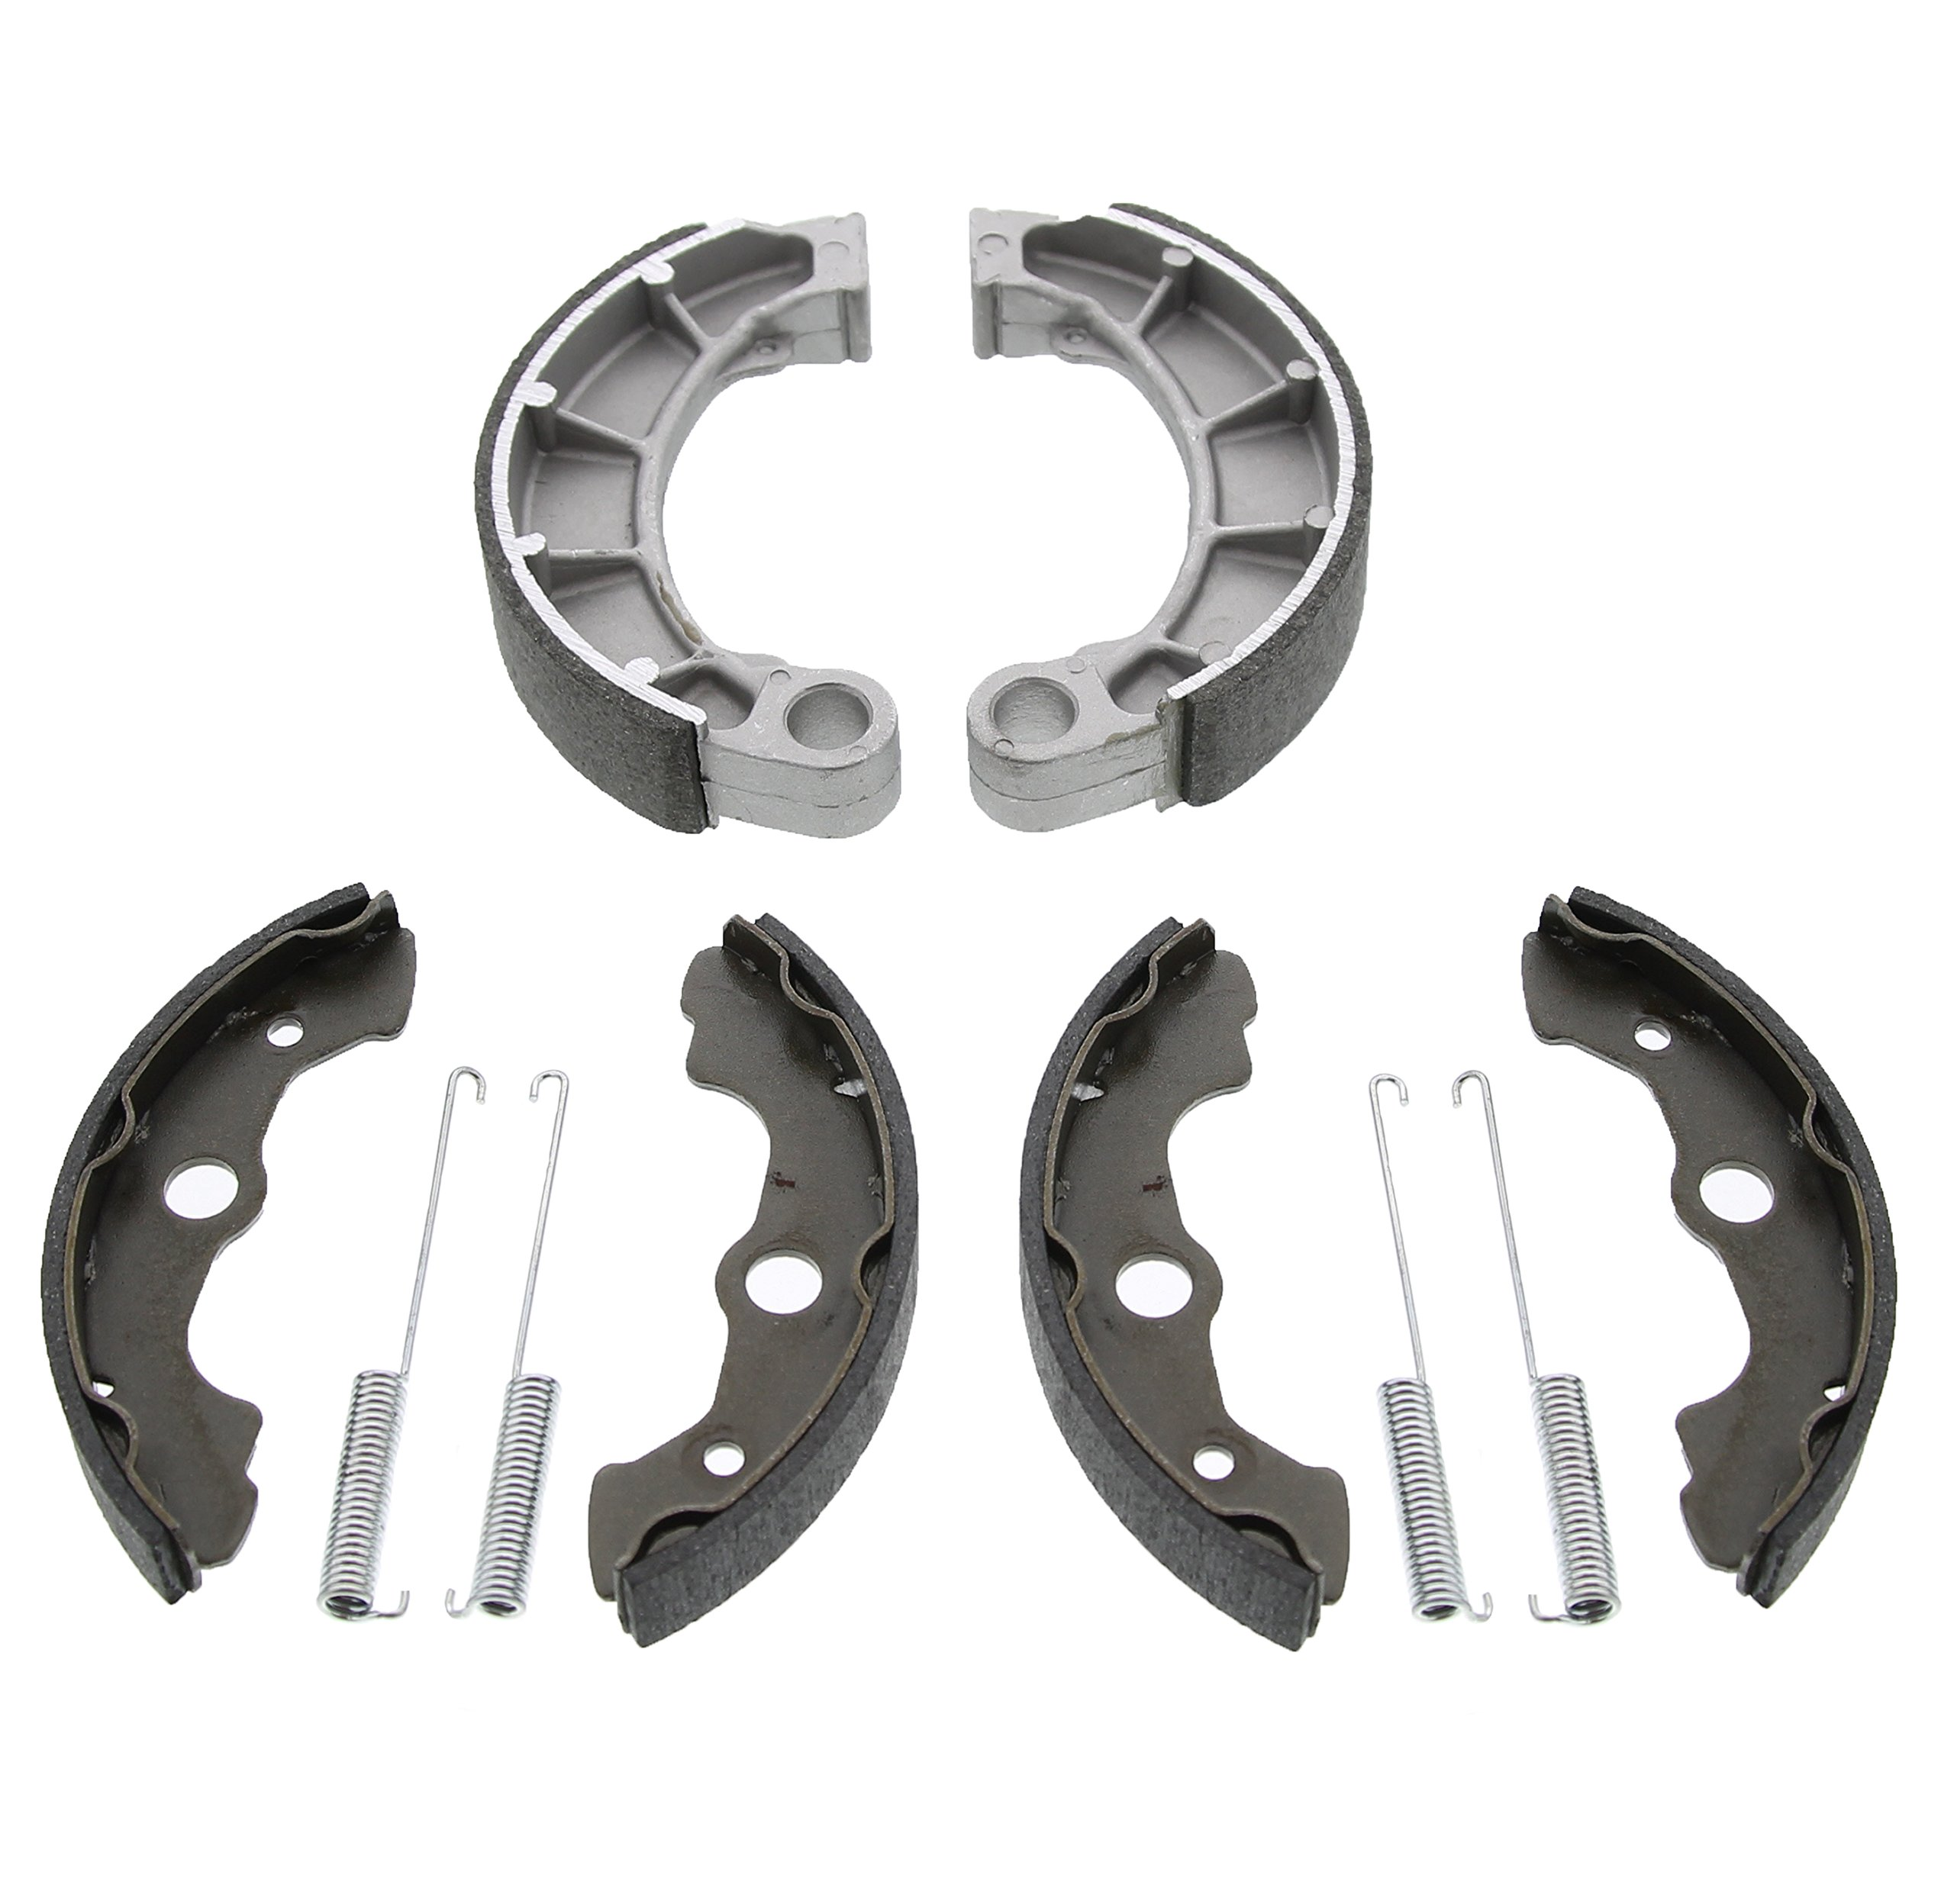 Race Driven Honda Front and Rear Standard Brake Shoes for ATV 4 Wheeler